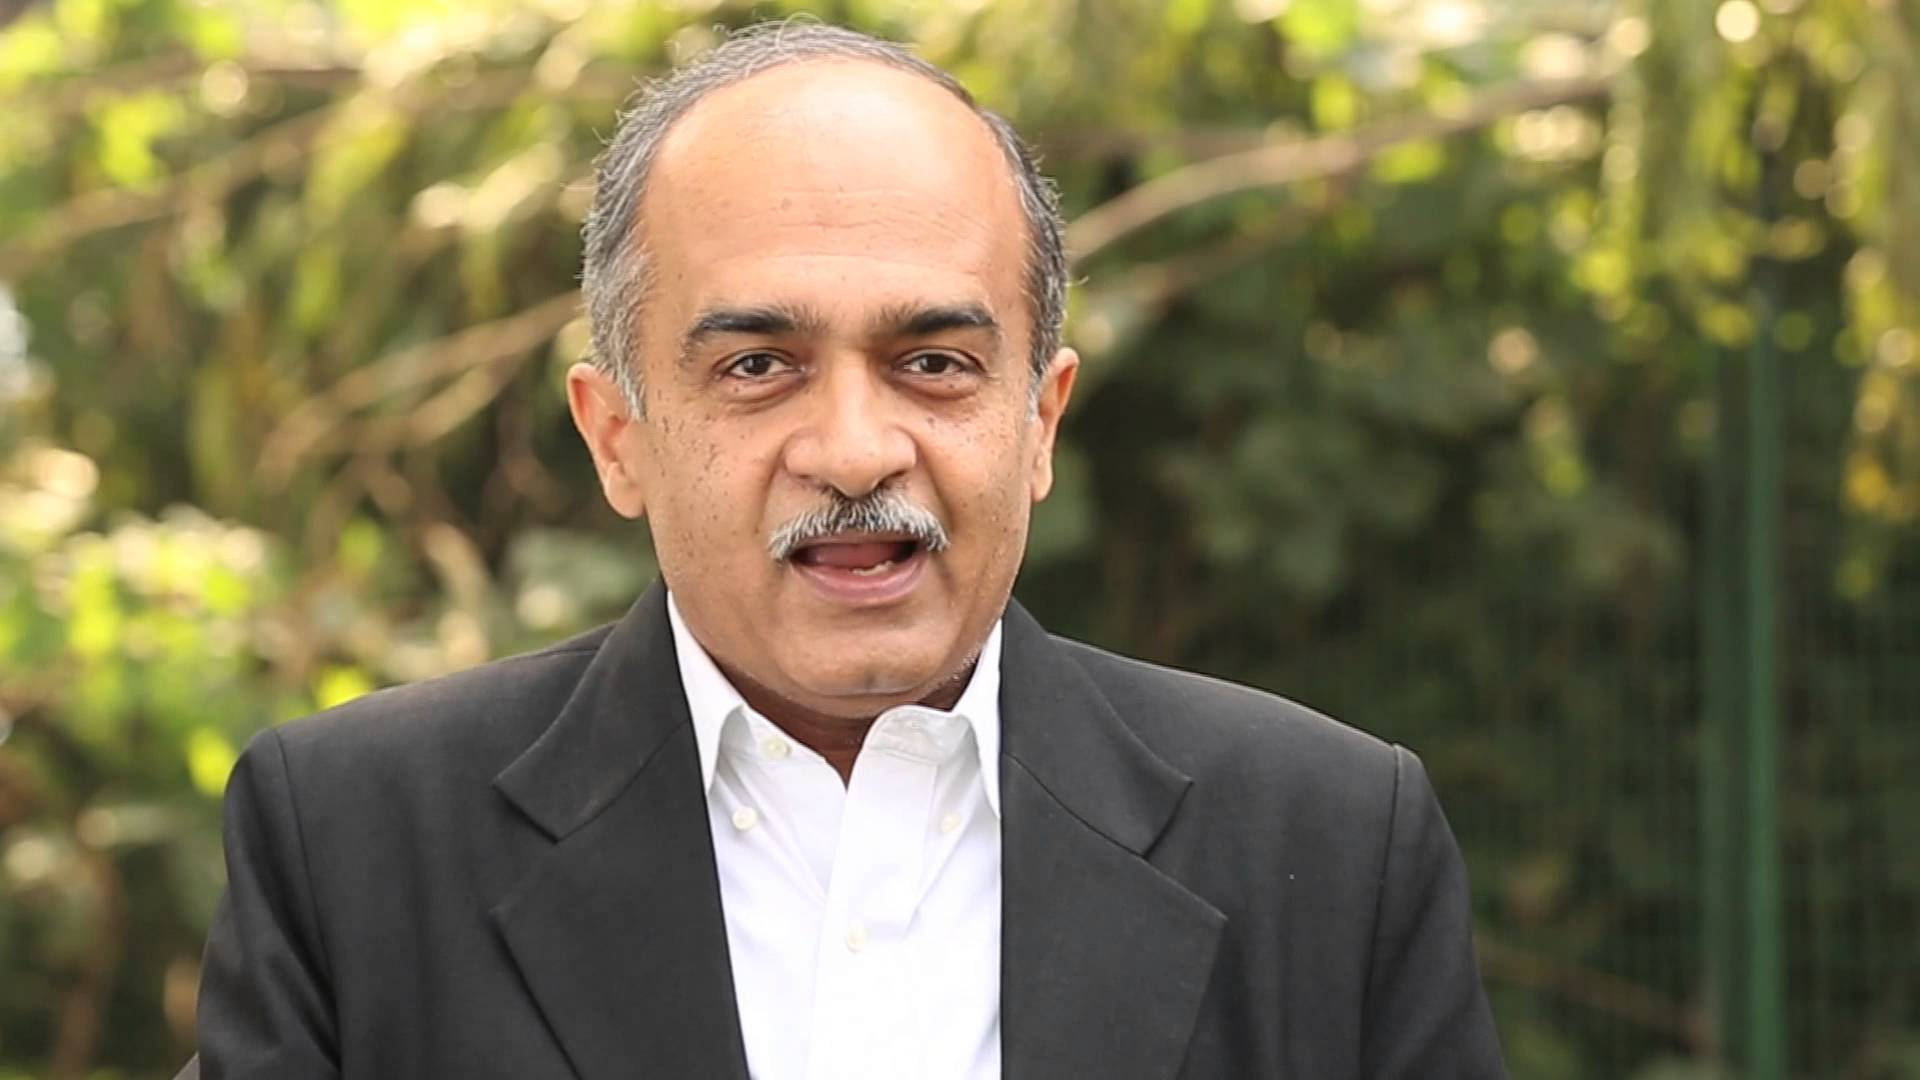 Prashant Bhushan of the CJAR. Credit: Youtube